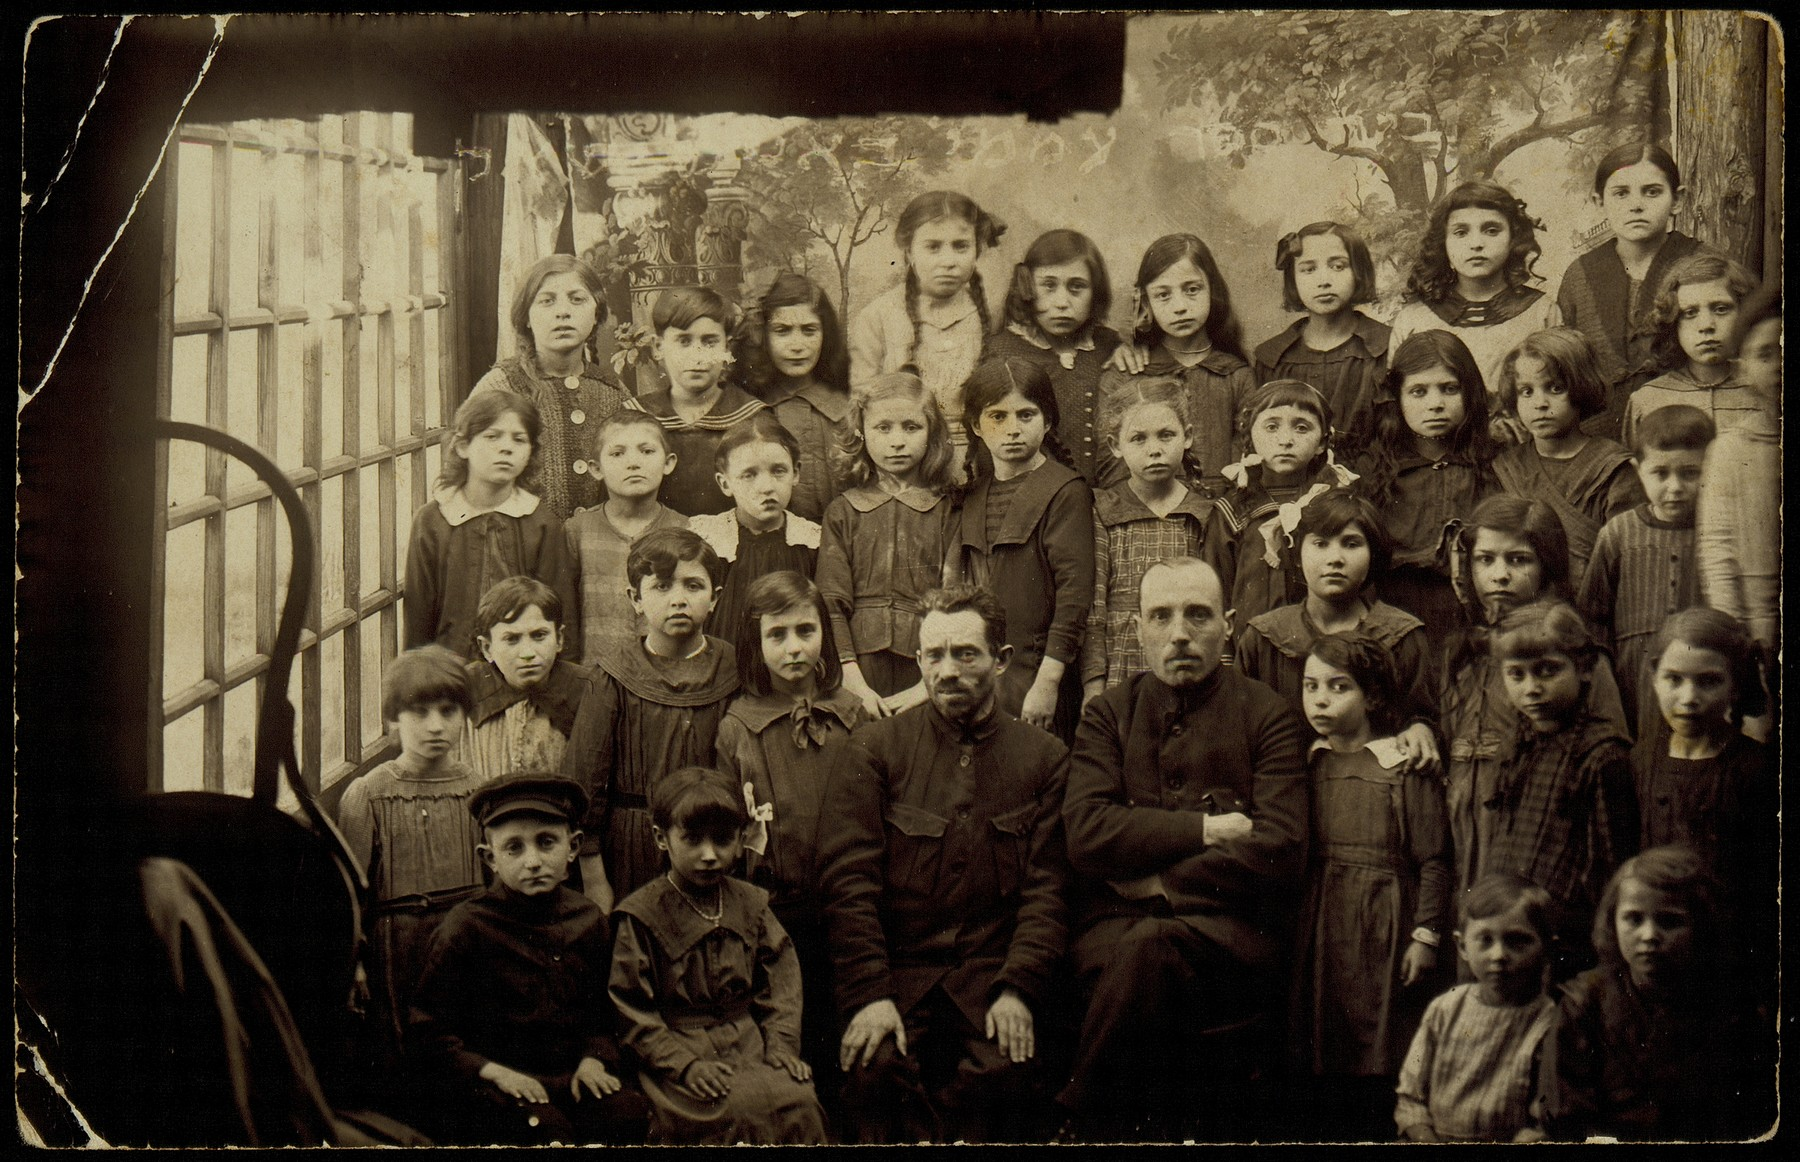 Young children and teachers pose for a studio school portrait.